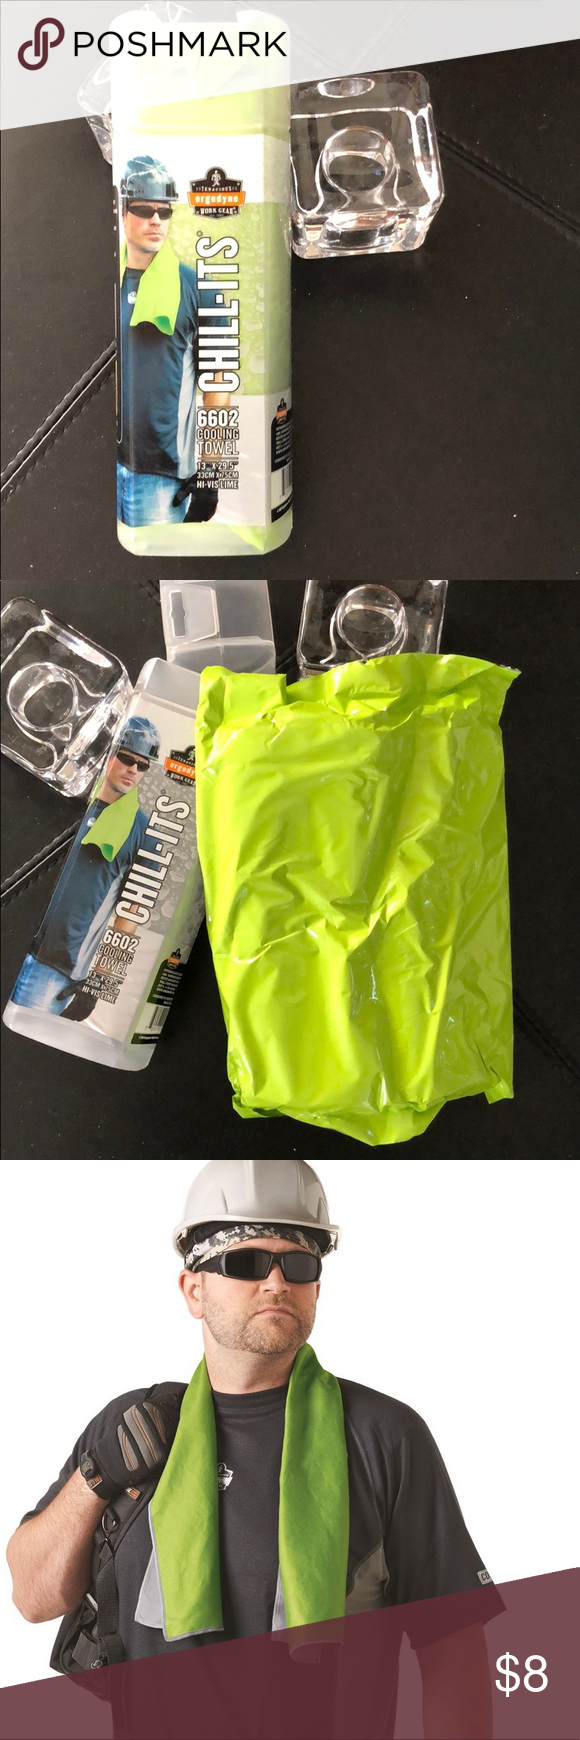 Ergodyne Chill Its Evaporative Cooling Towel Hivis Nwt Cooling